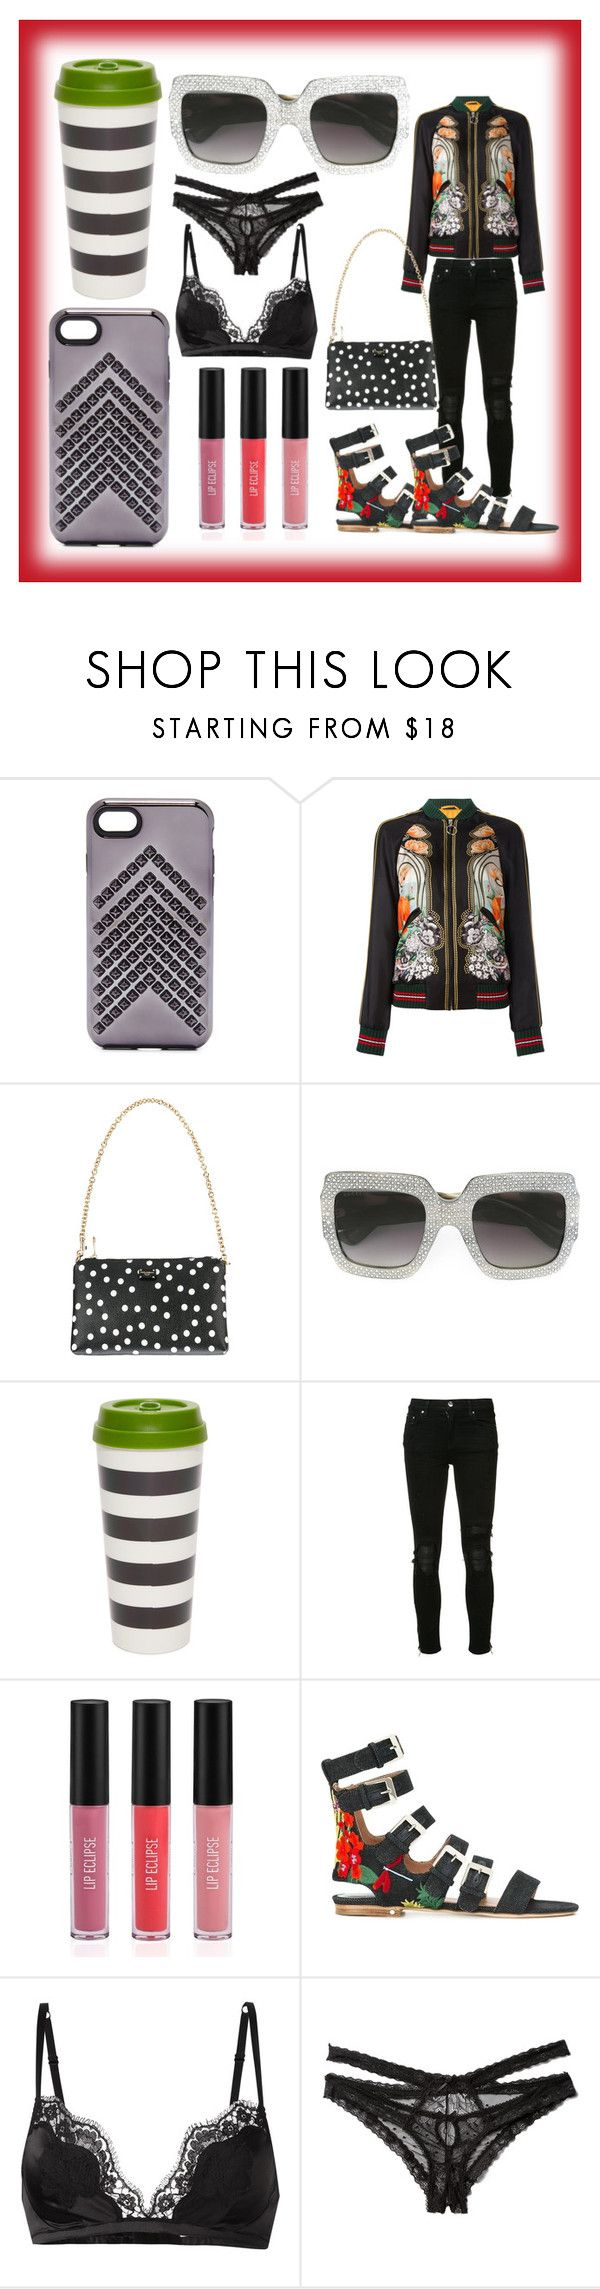 """""""best sale offer"""" by denisee-denisee ❤ liked on Polyvore featuring Rebecca Minkoff, Gucci, Dolce&Gabbana, Kate Spade, AMIRI, Sigma, Laurence Dacade, Honeydew Intimates and vintage"""